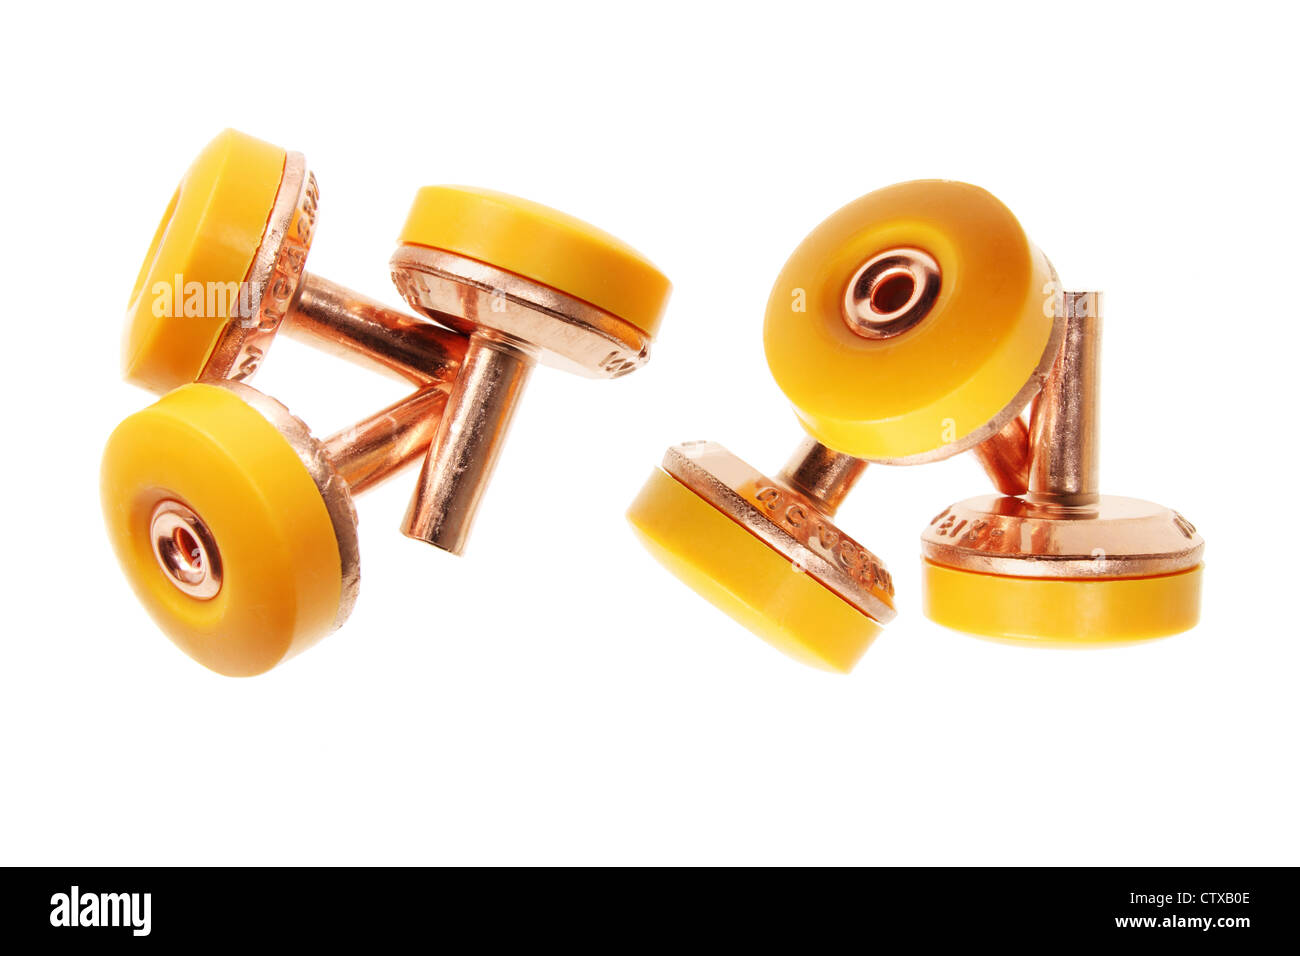 Tap Washers - Stock Image